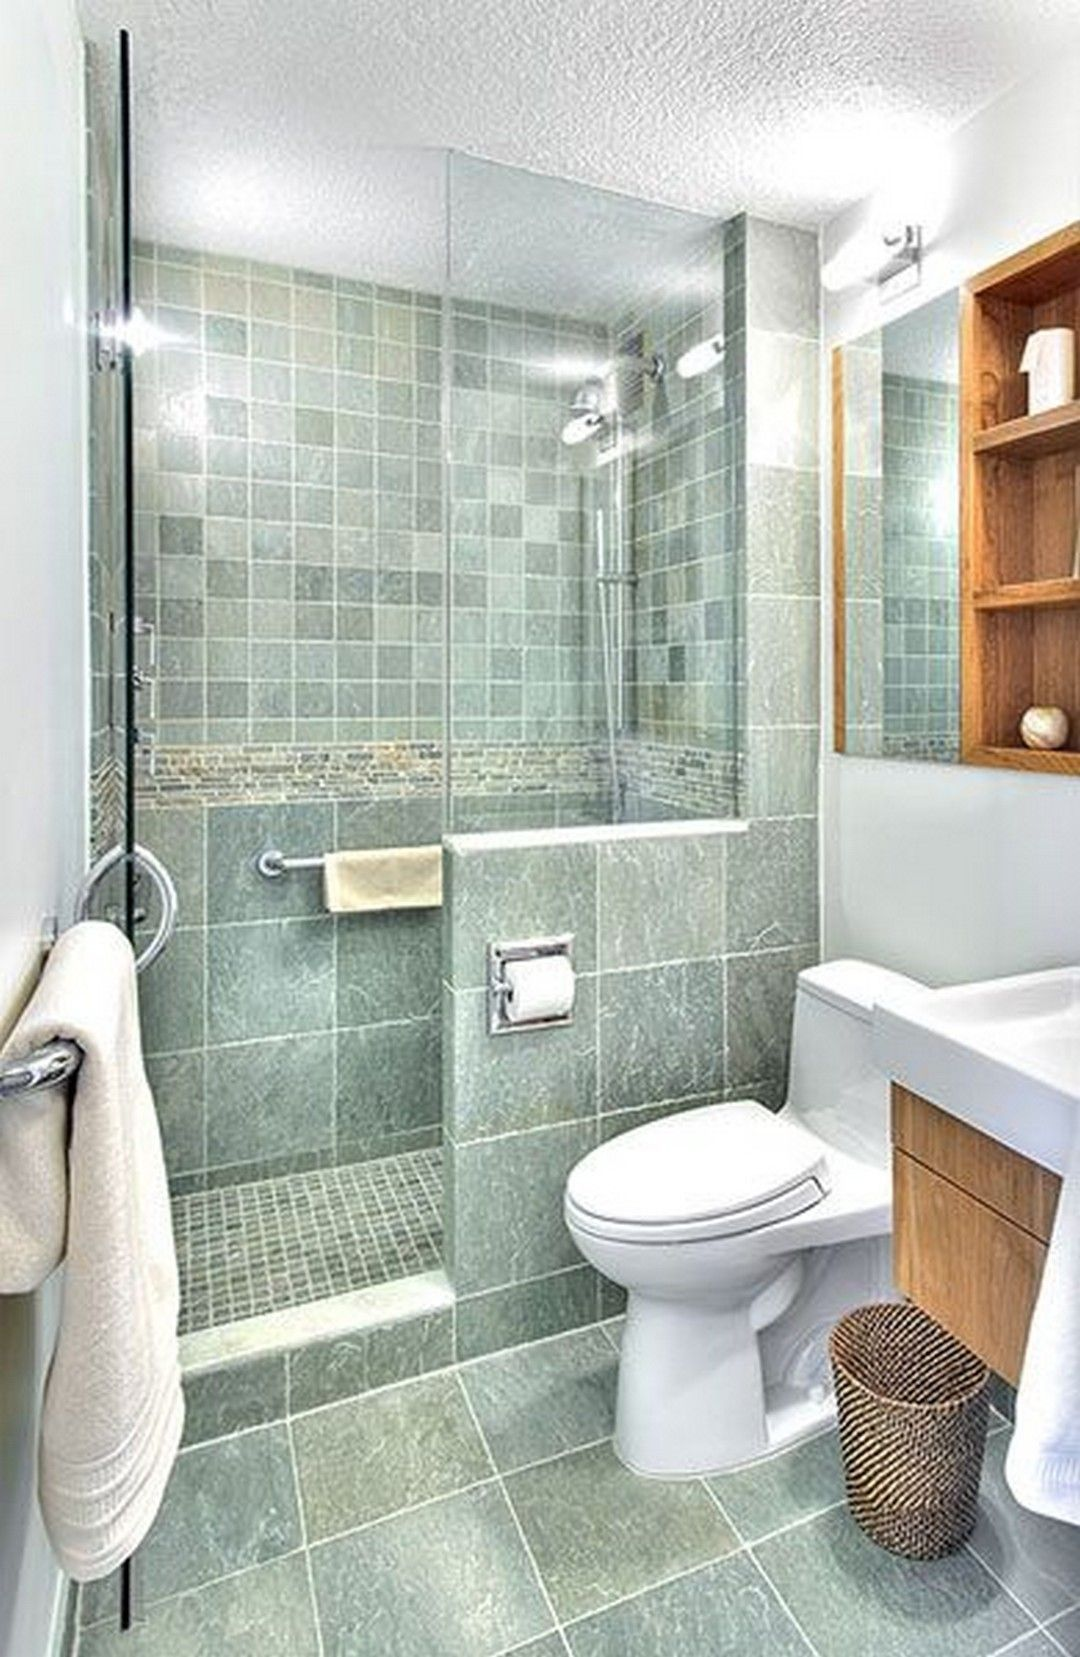 4 x 8 badezimmerdesigns pin by alicia spence on bathroom  pinterest  bathroom small